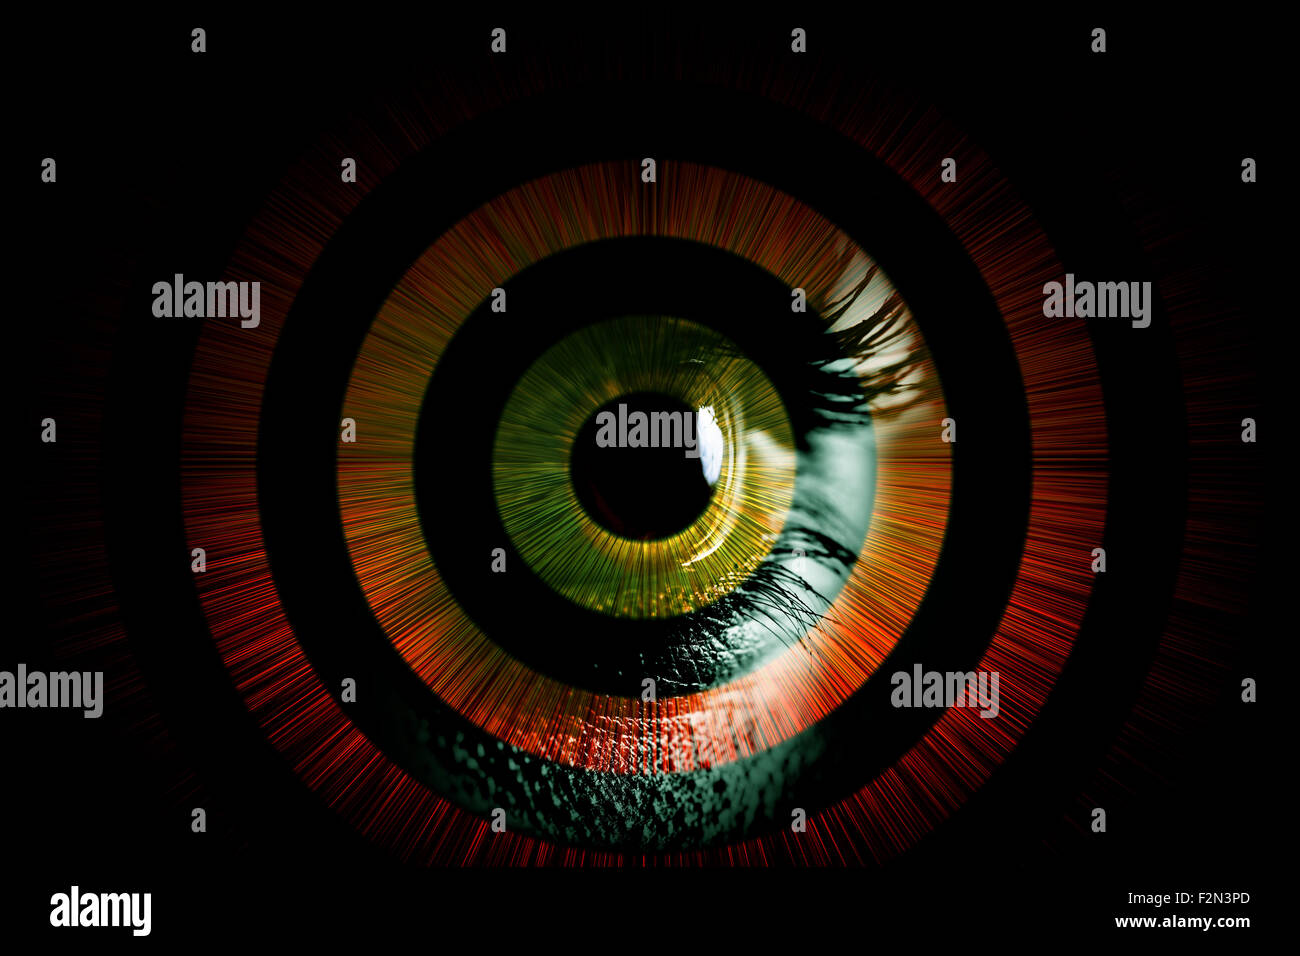 Human eye – abstract vision concept - Stock Image